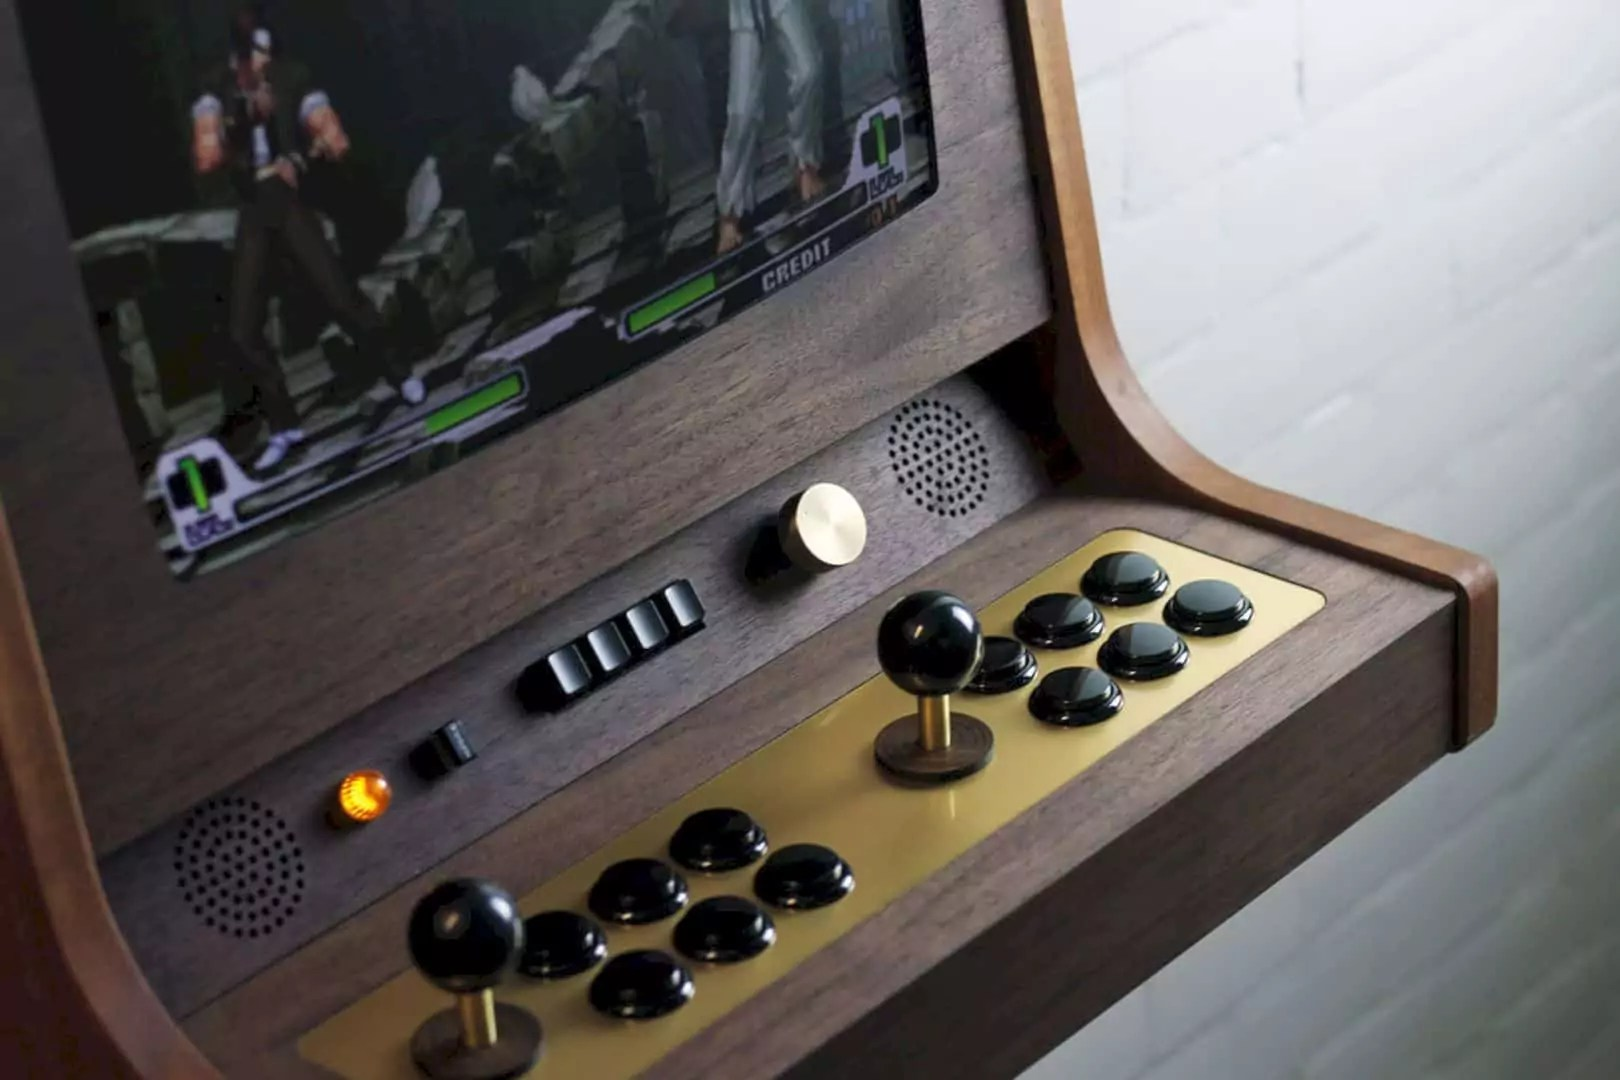 OriginX: The Delicate Homage to the Pong Cabinet